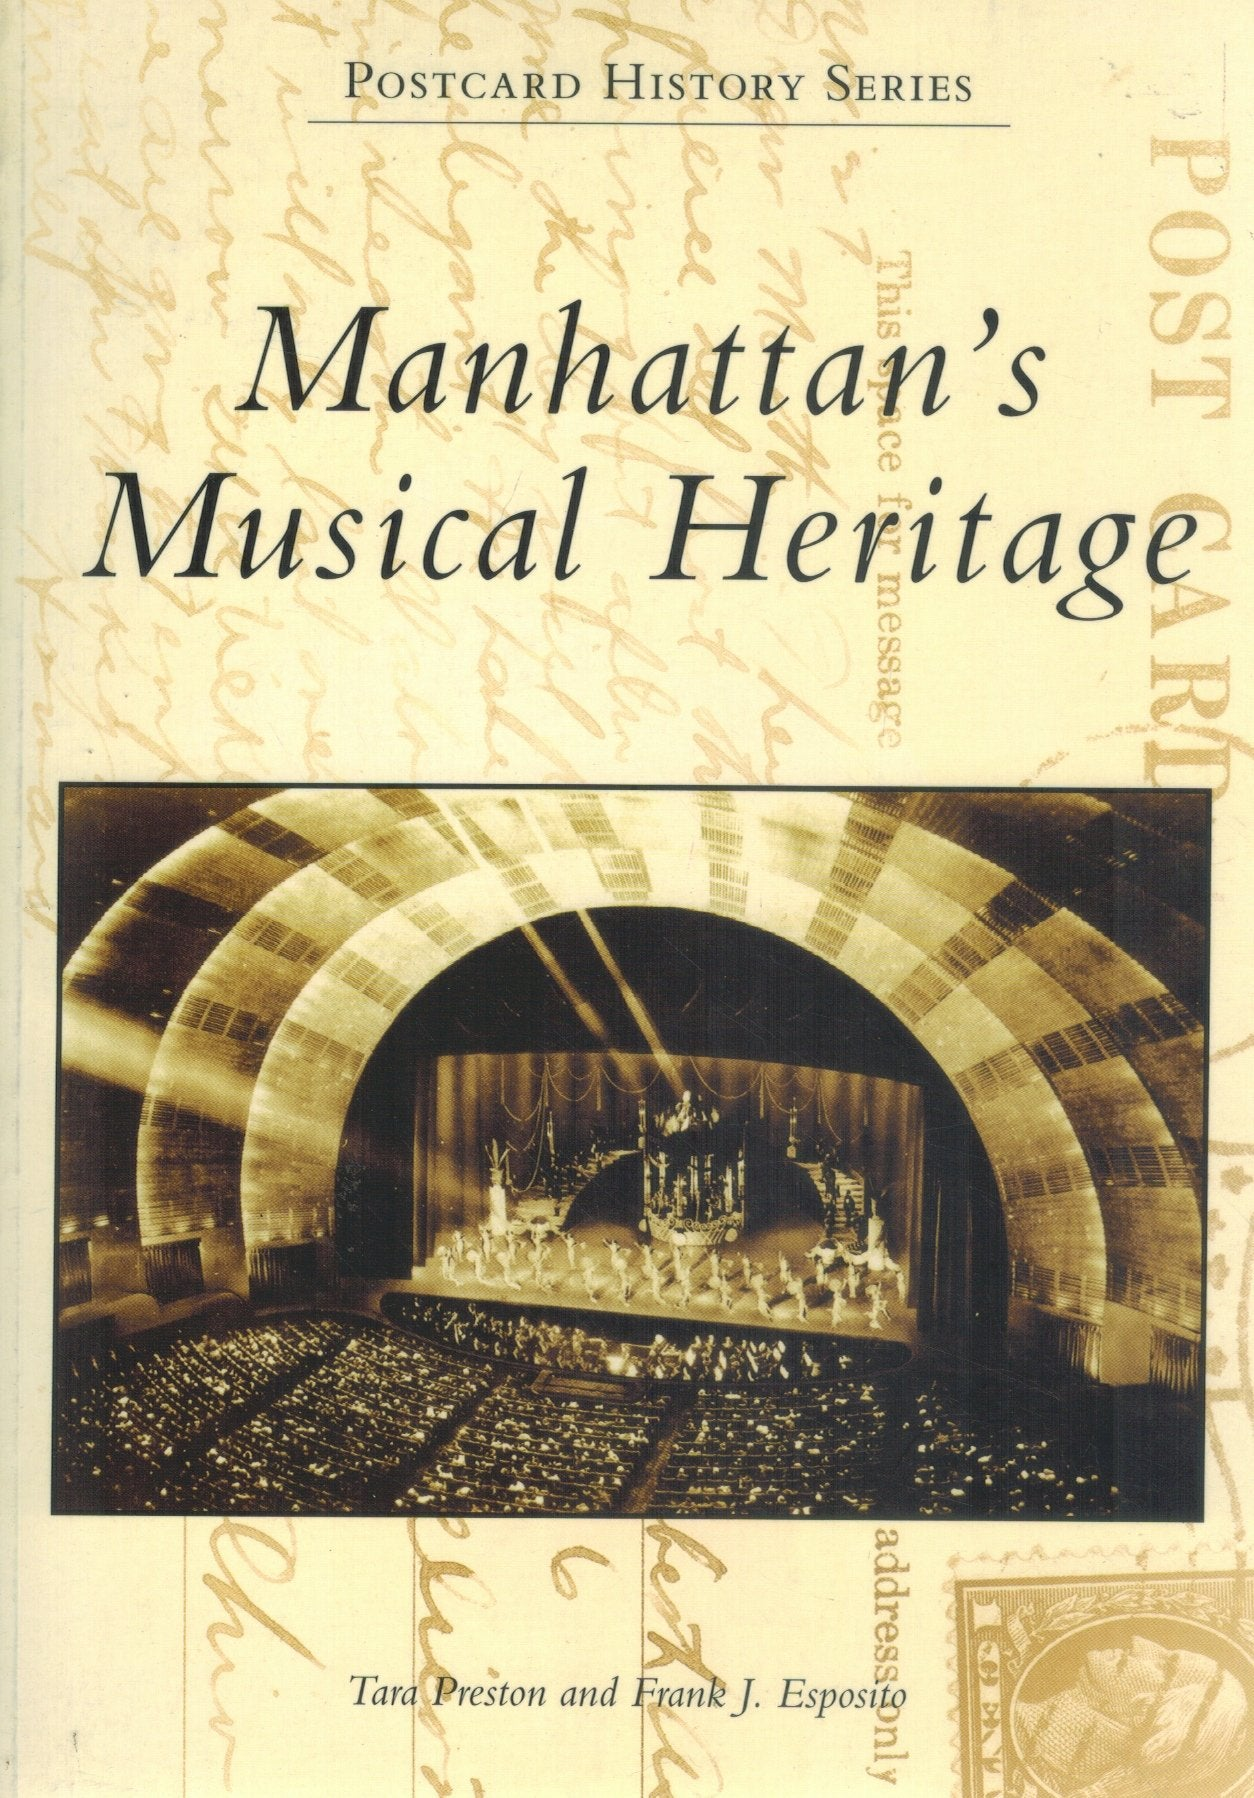 Manhattan's Musical Heritage      (Postcard History) - books-new